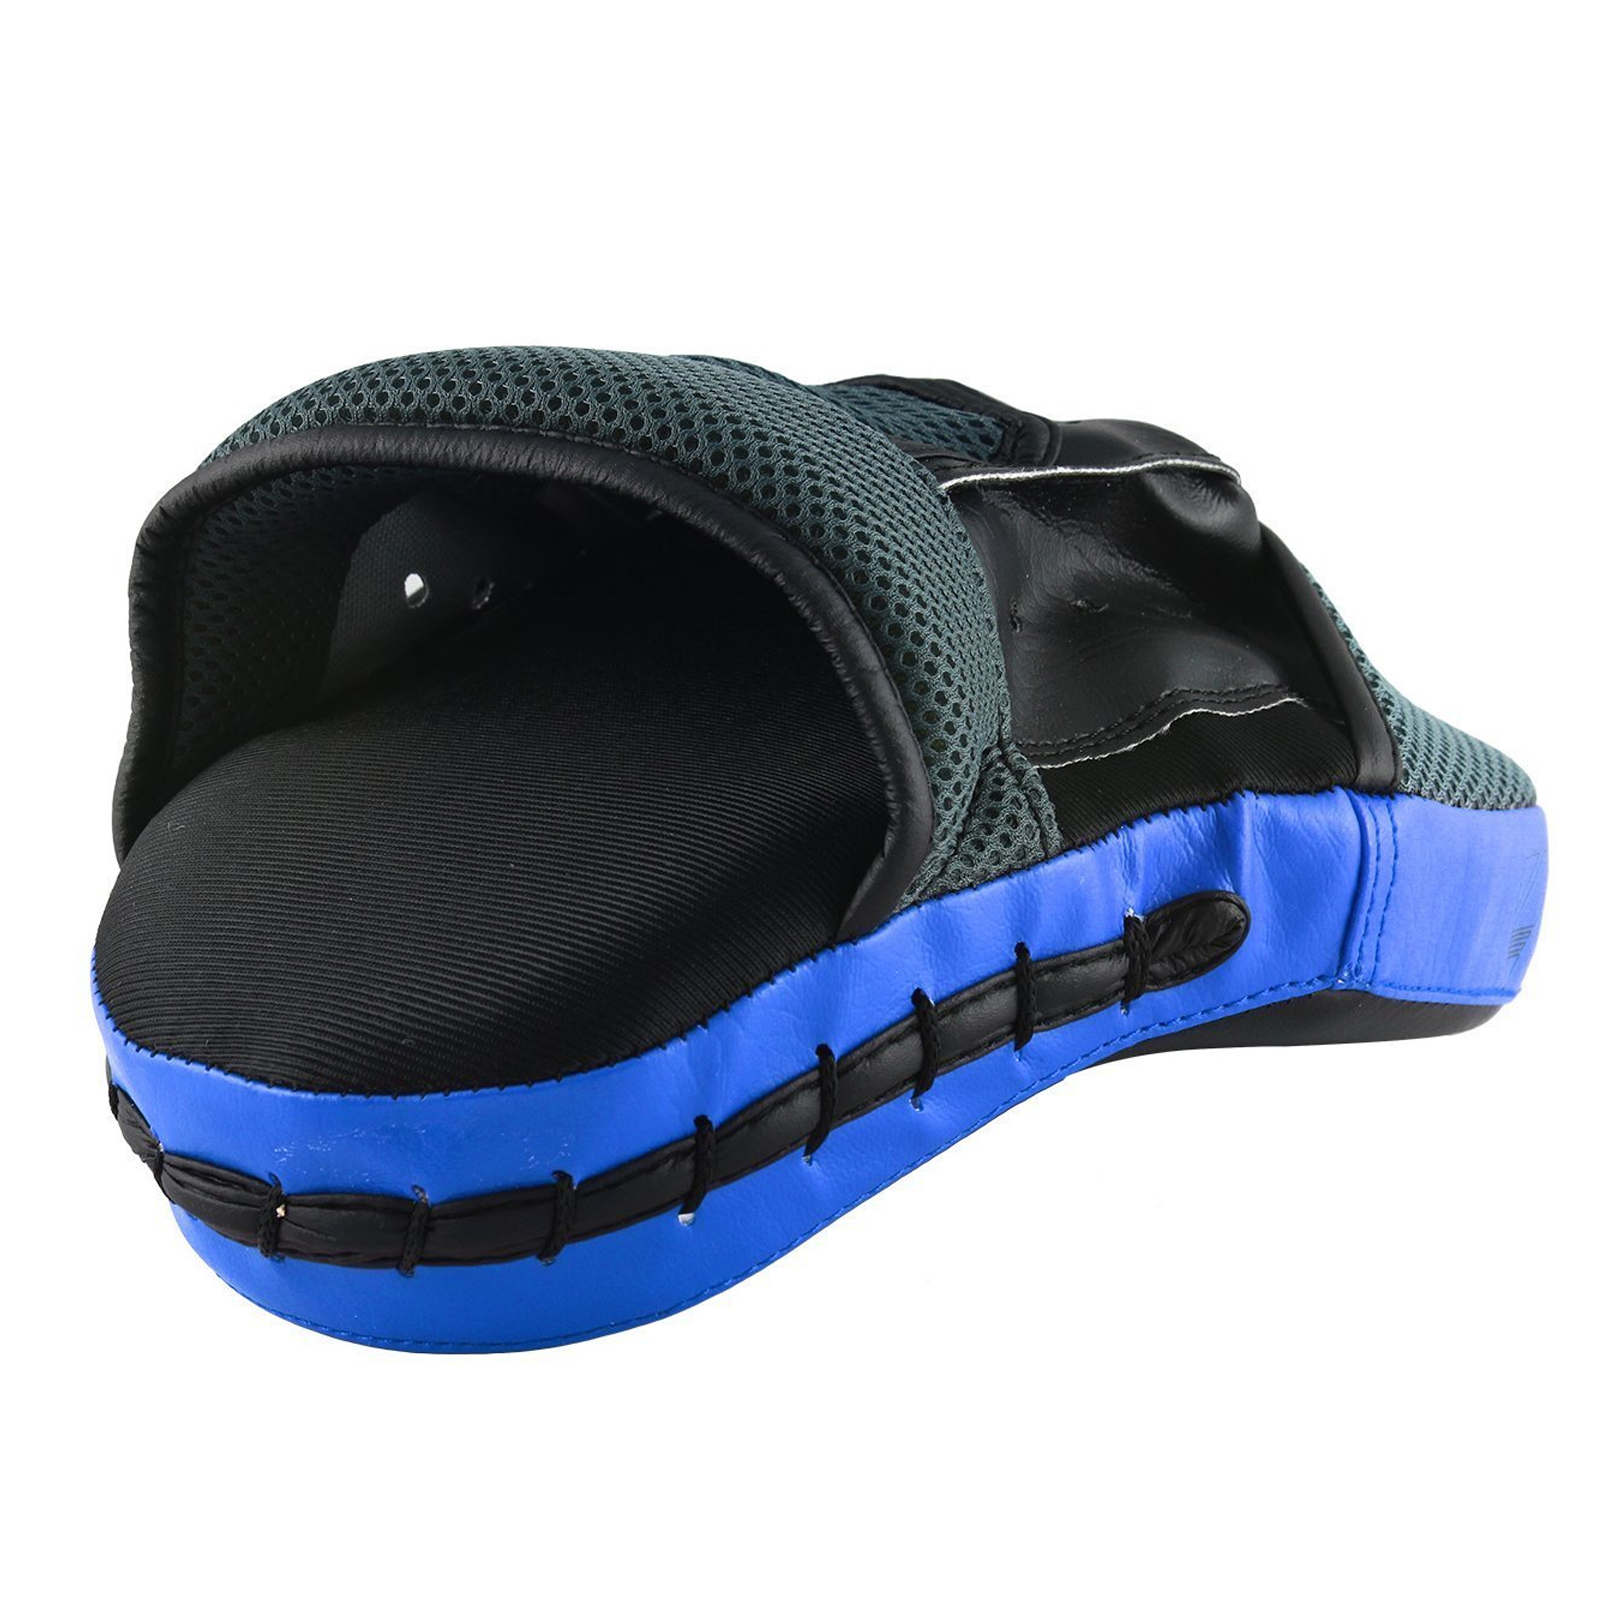 Workout Gloves Target: New Target MMA Boxing Mitt Focus Punch Pad Training Glove